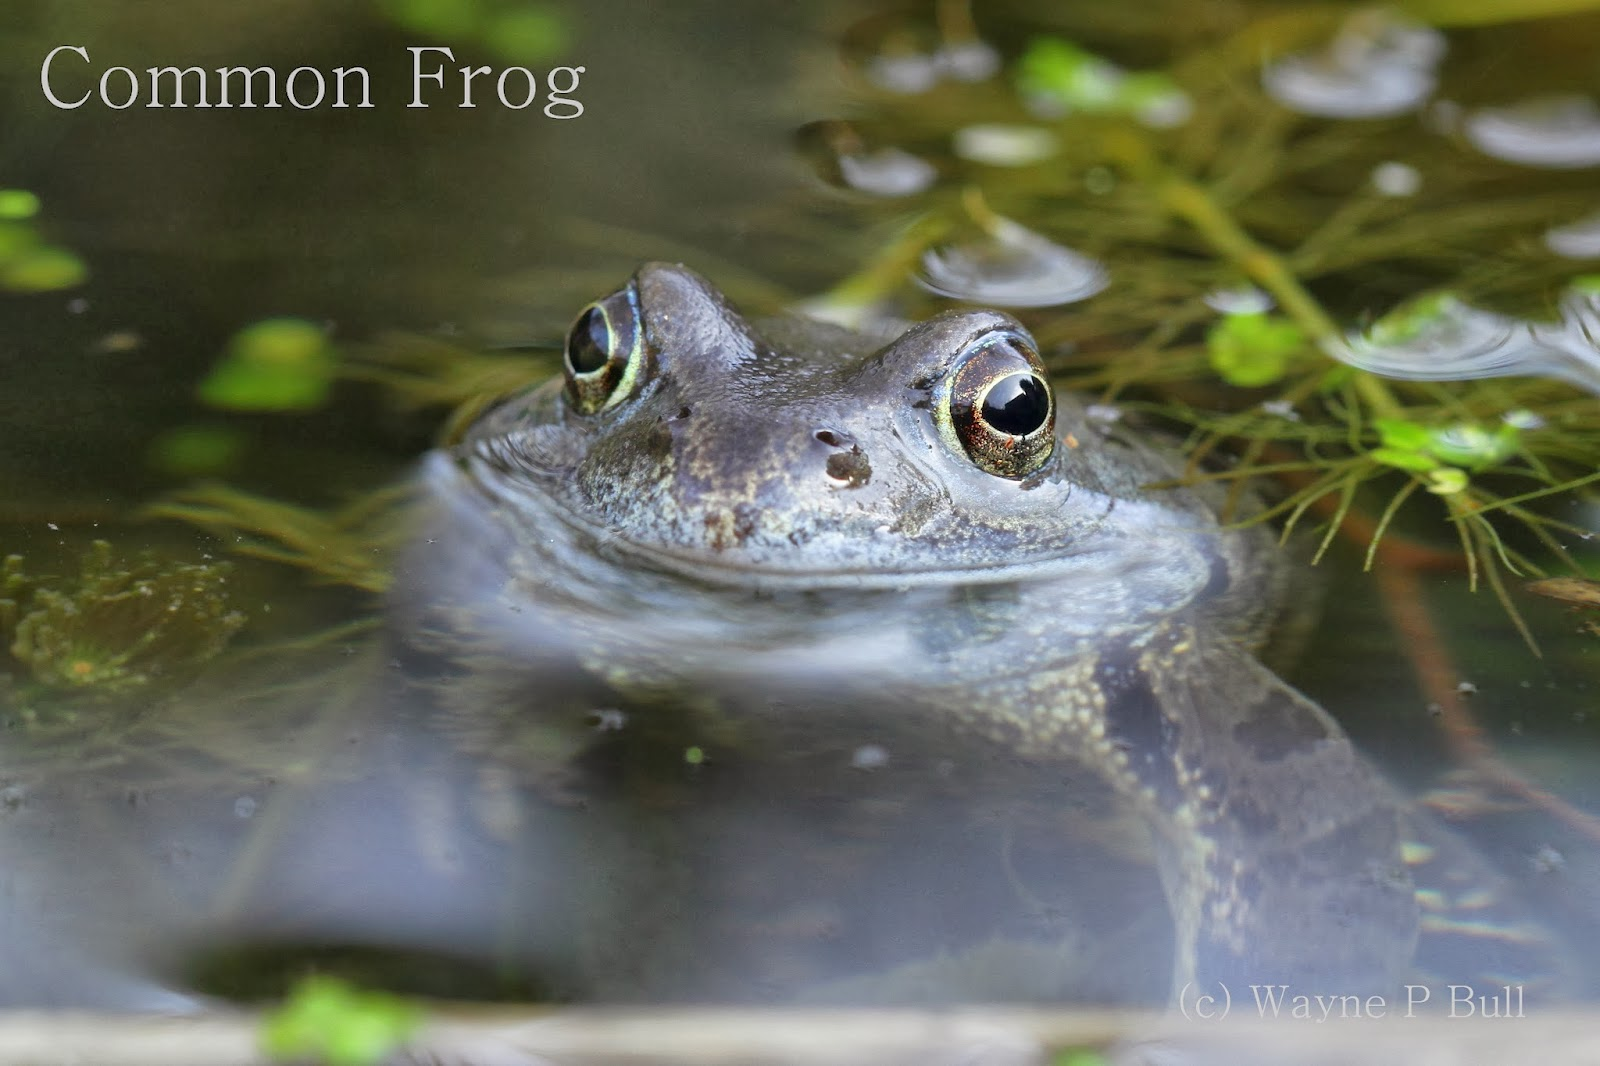 ... have finally emerged in my pond common frog common frog common frog